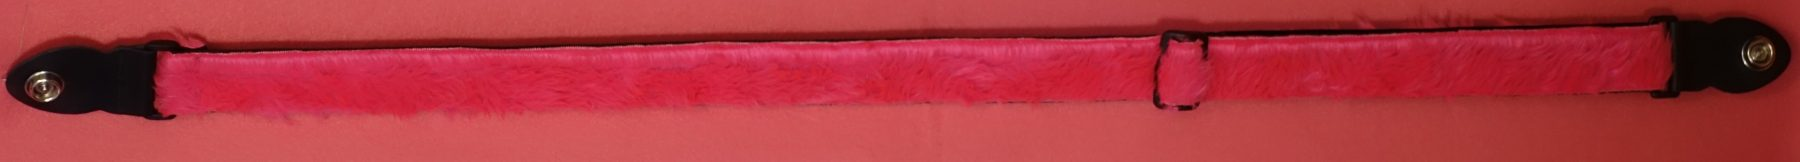 The Fuzzy Pink Strap